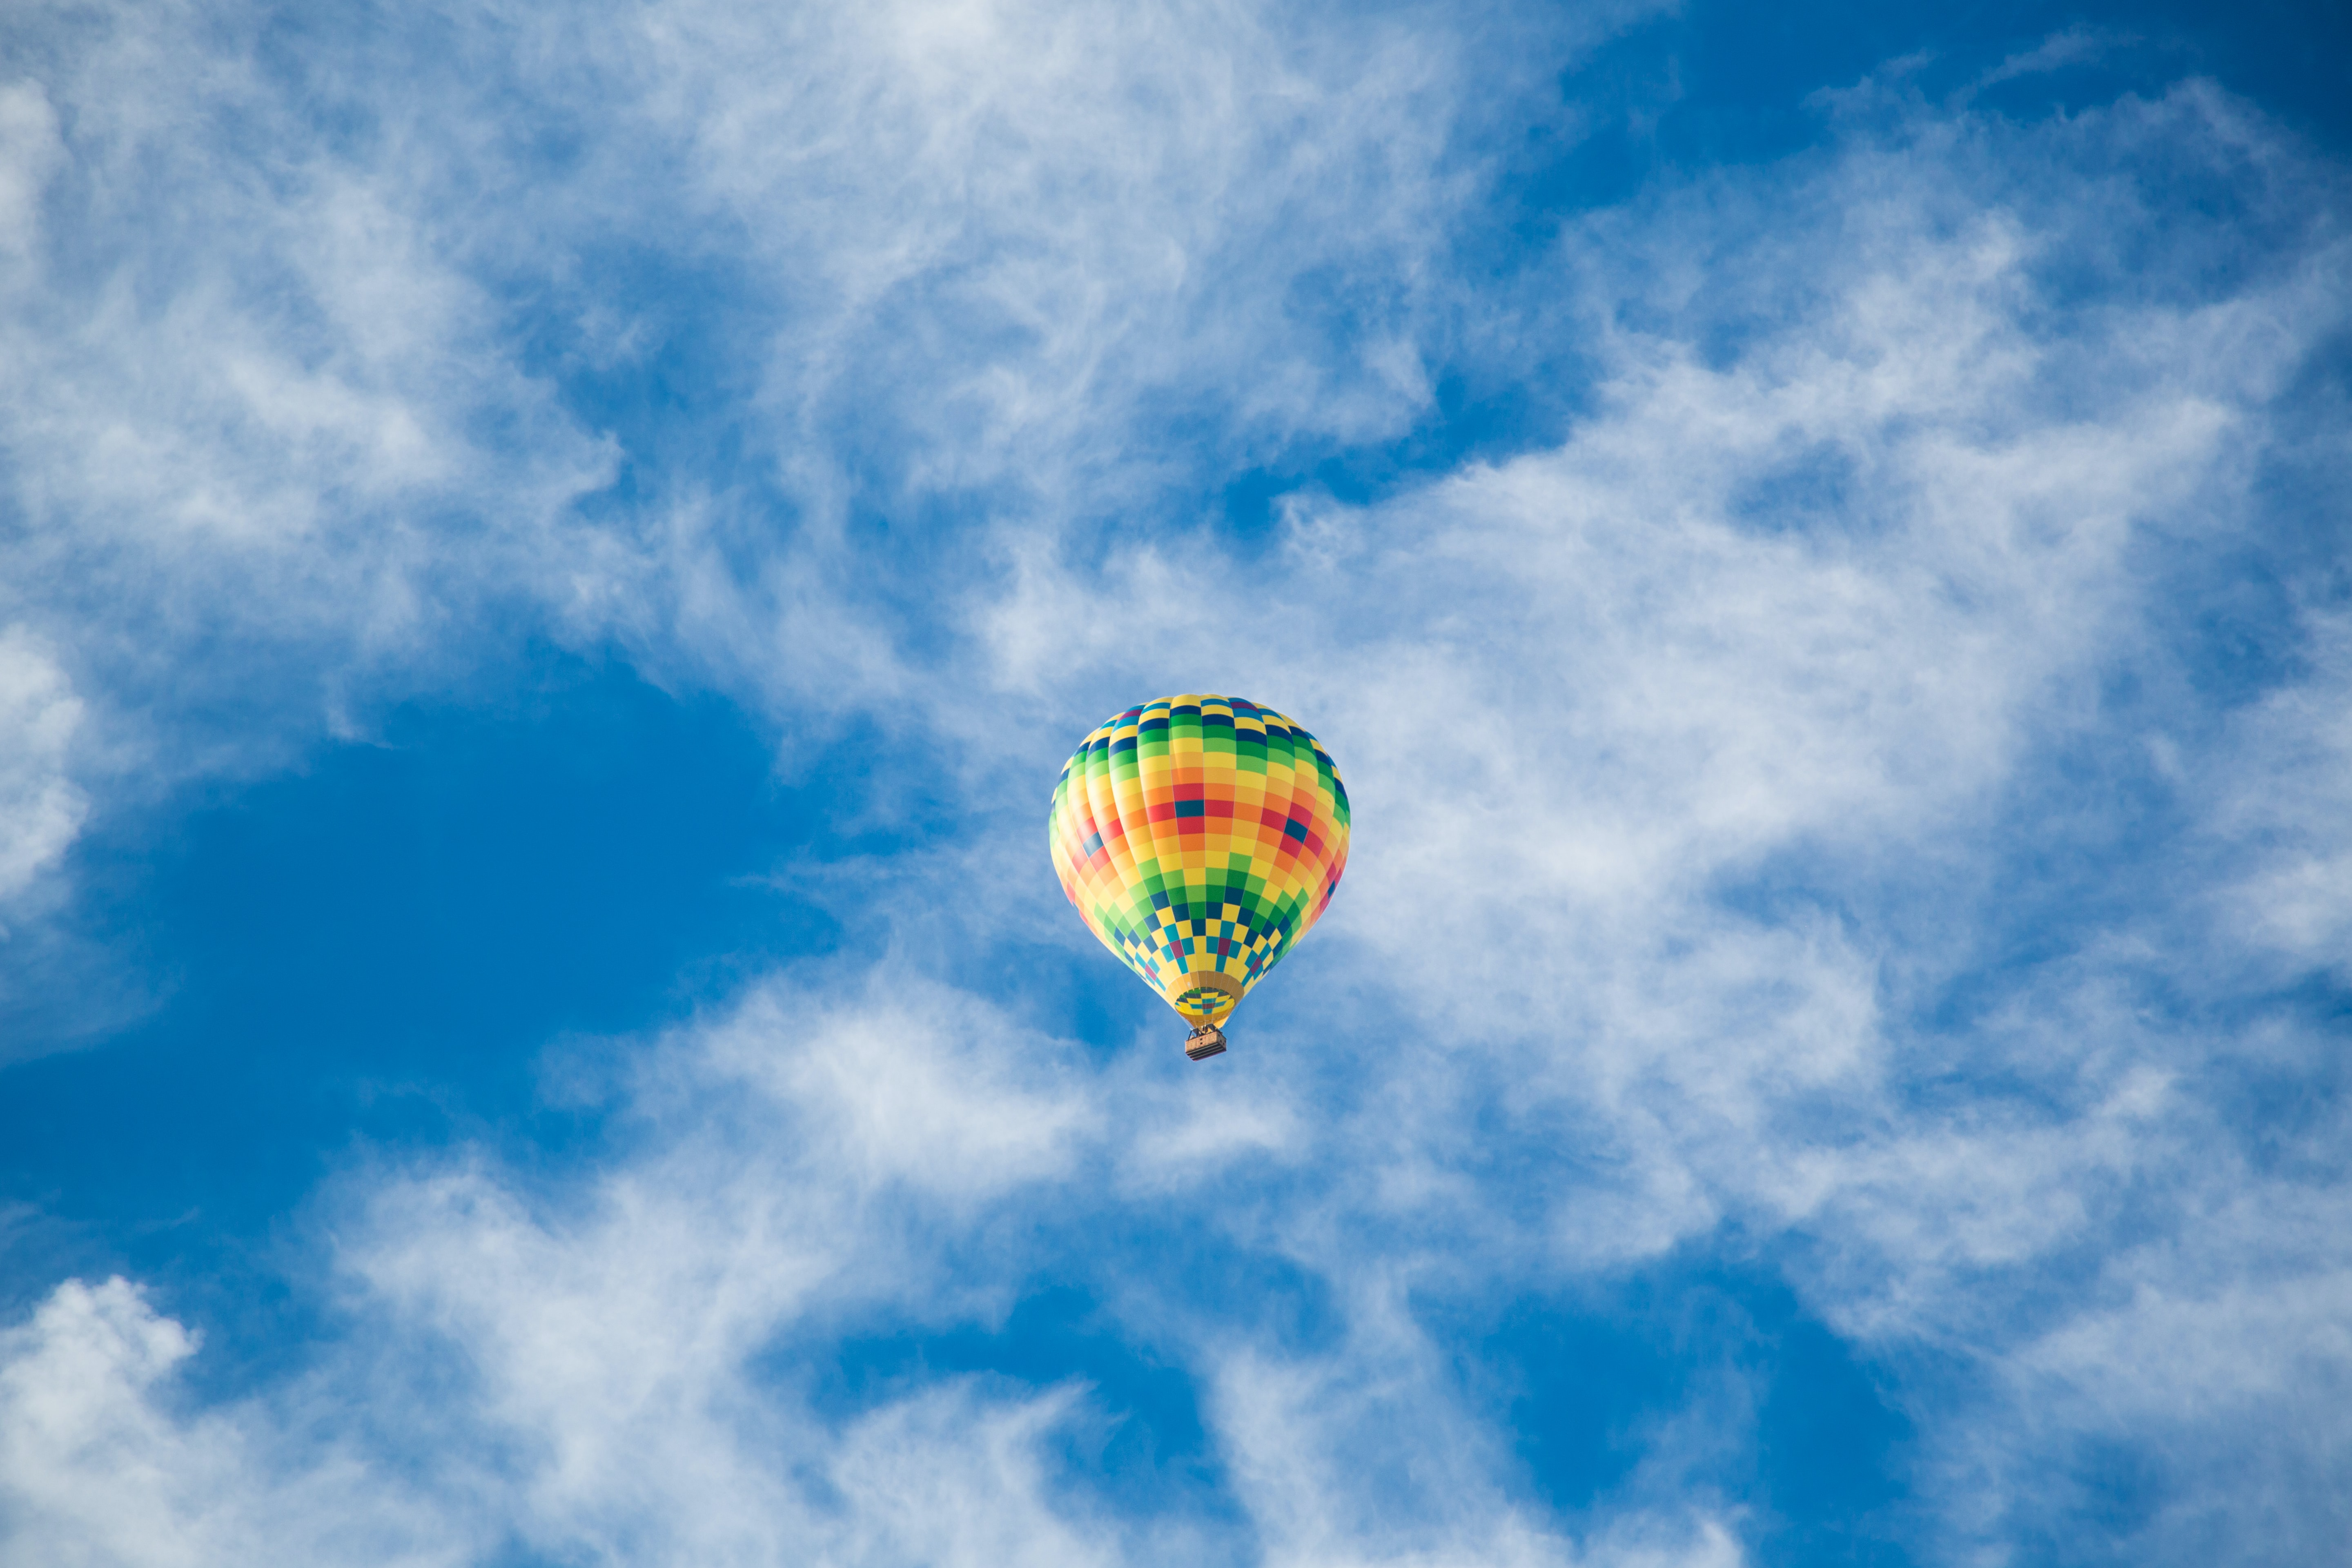 Colorful hot air balloon flies across a bright blue sky